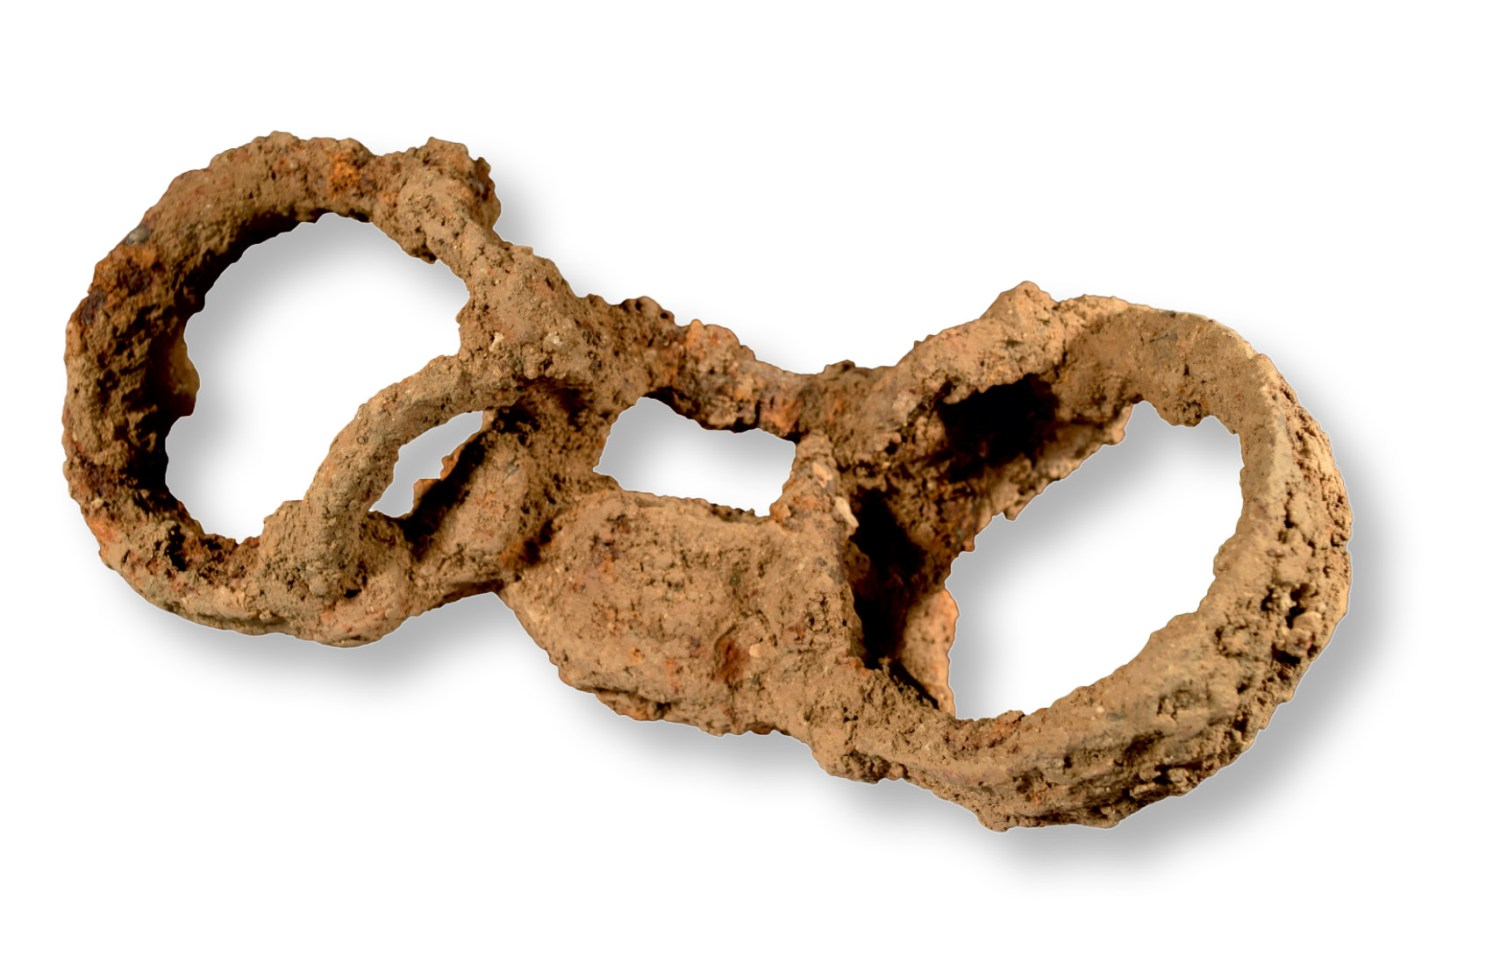 ABOVE These iron shackles were found padlocked around the ankles of a Roman man who had been interred at Great Casterton, Rutland. Might his burial represent rare direct evidence for slavery in Roman Britain?